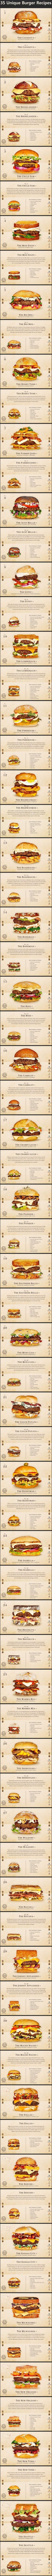 35 Unique Burger Recipes Pictures, Photos, and Images for Facebook, Tumblr, Pinterest, and Twitter